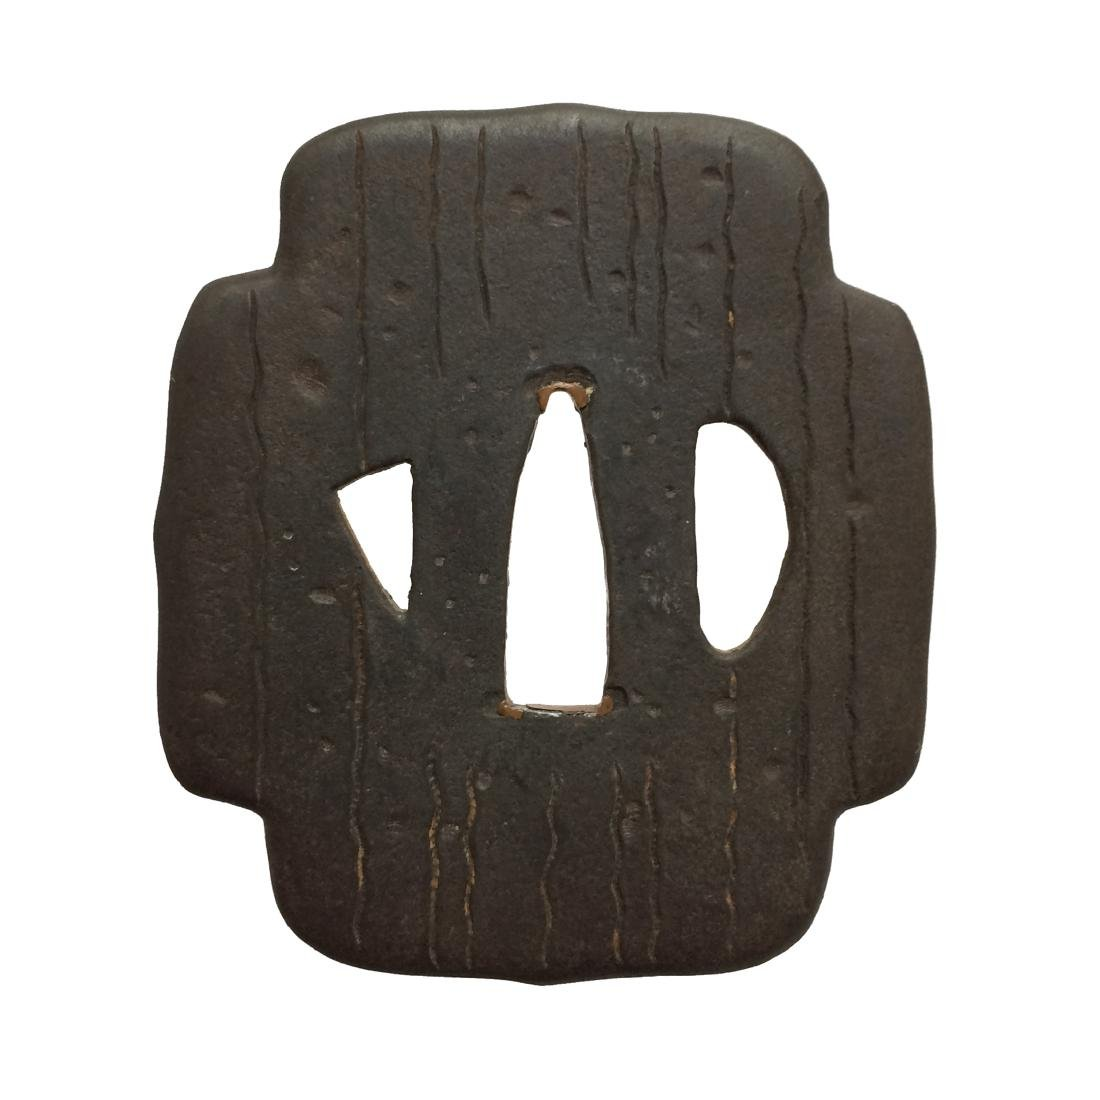 Iron tsuba carved and inlaid with brass - 2